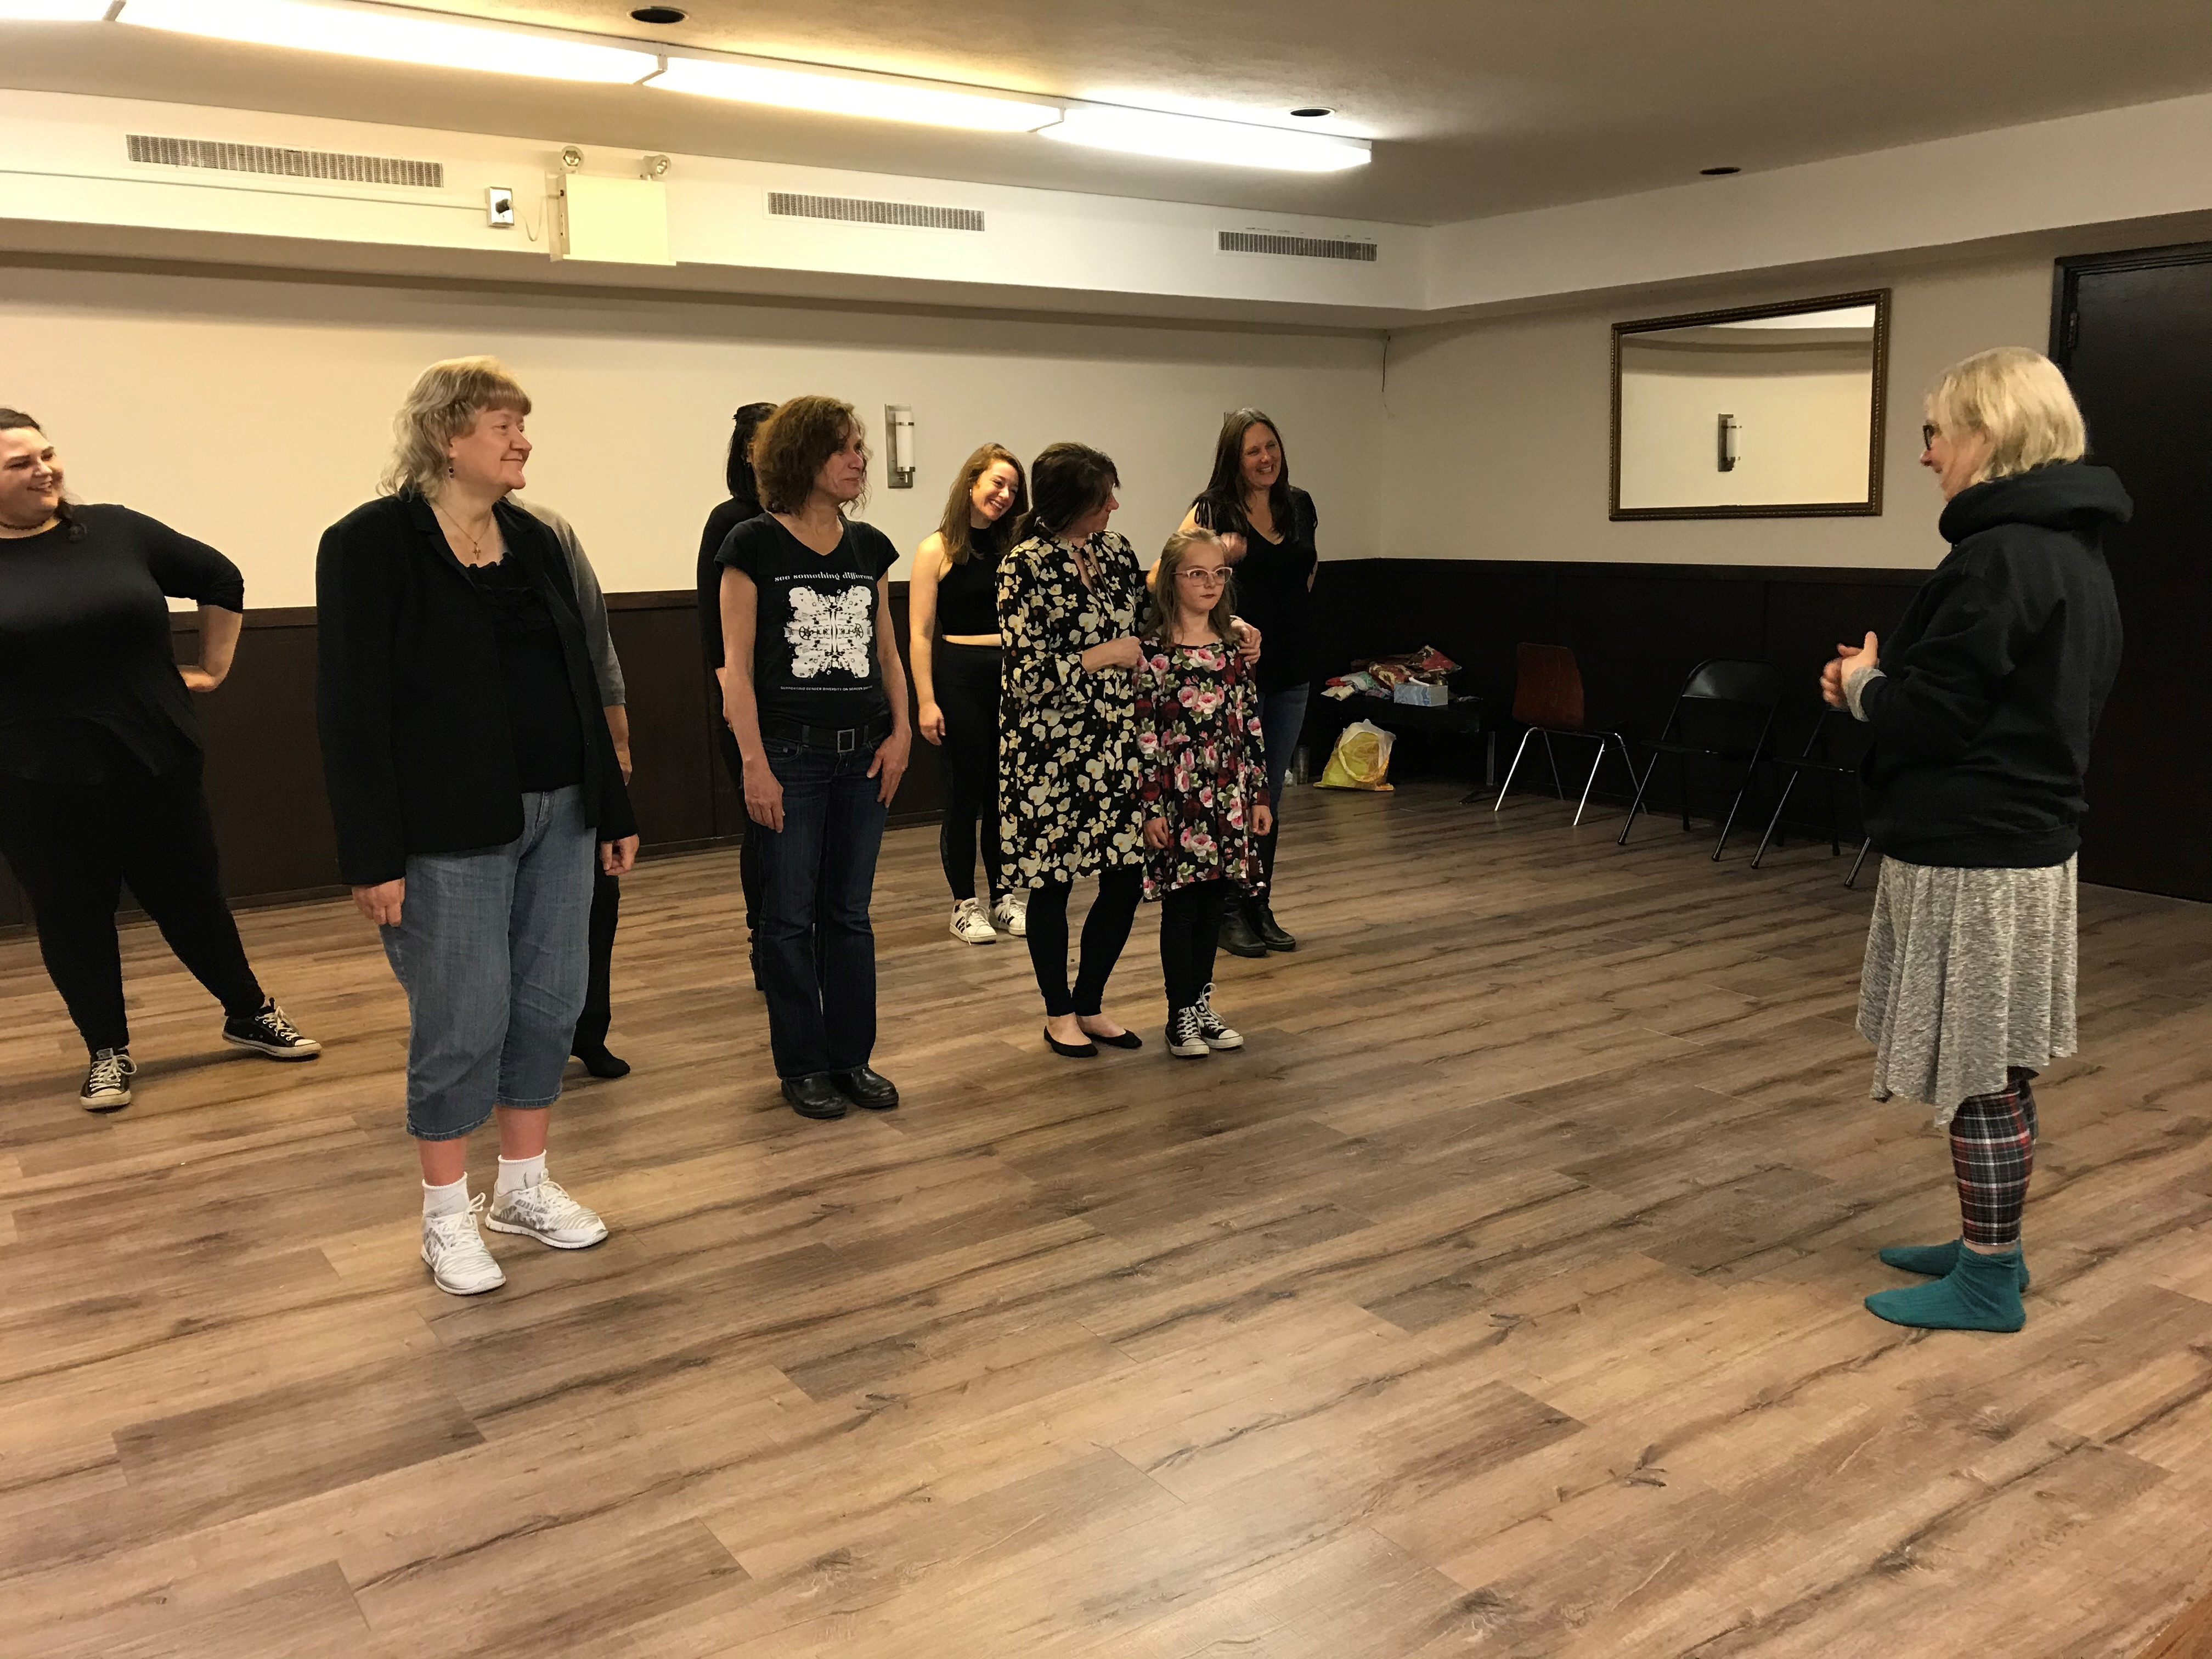 Cast members Laura Bradley, Mary Costello, Wendy Smallwood, Allison Kelly, Ruth Lawrence, Lily Halley-Green and Alexis Koetting, and director Lois Brown in rehearsal.